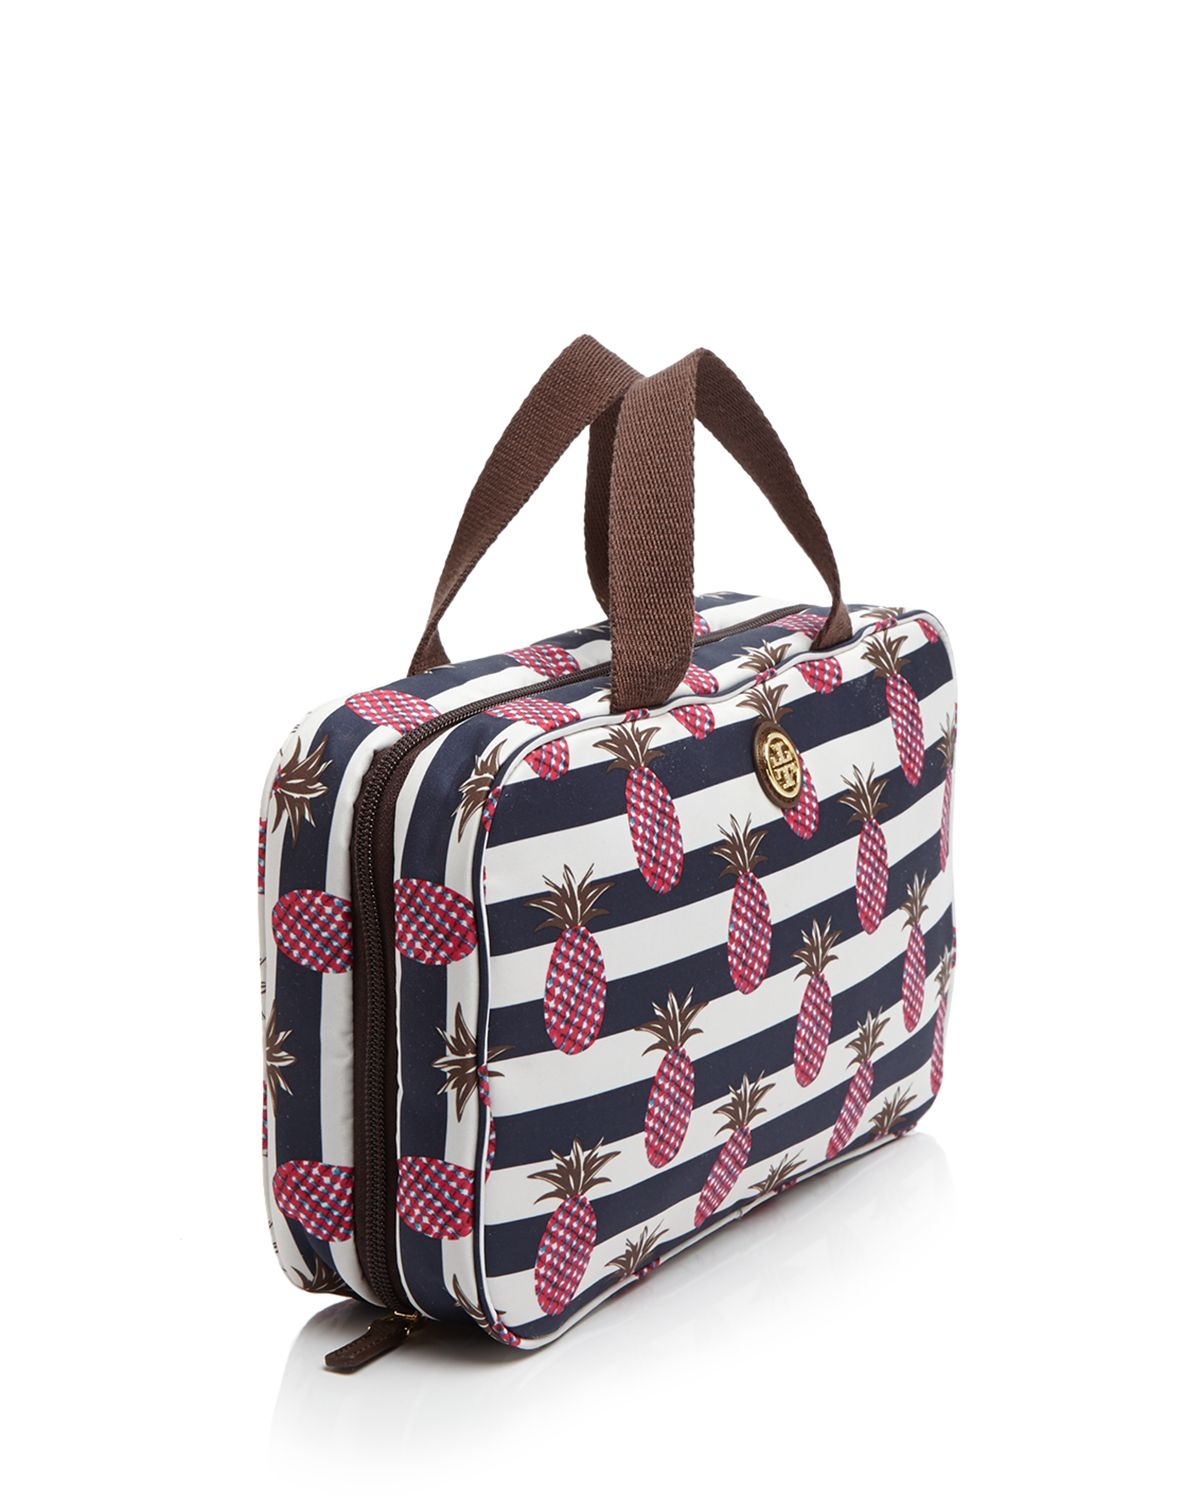 0b3462eb768 Tory Burch Cosmetic Case - Printed Nylon Pineapple Stripe Hanging ...